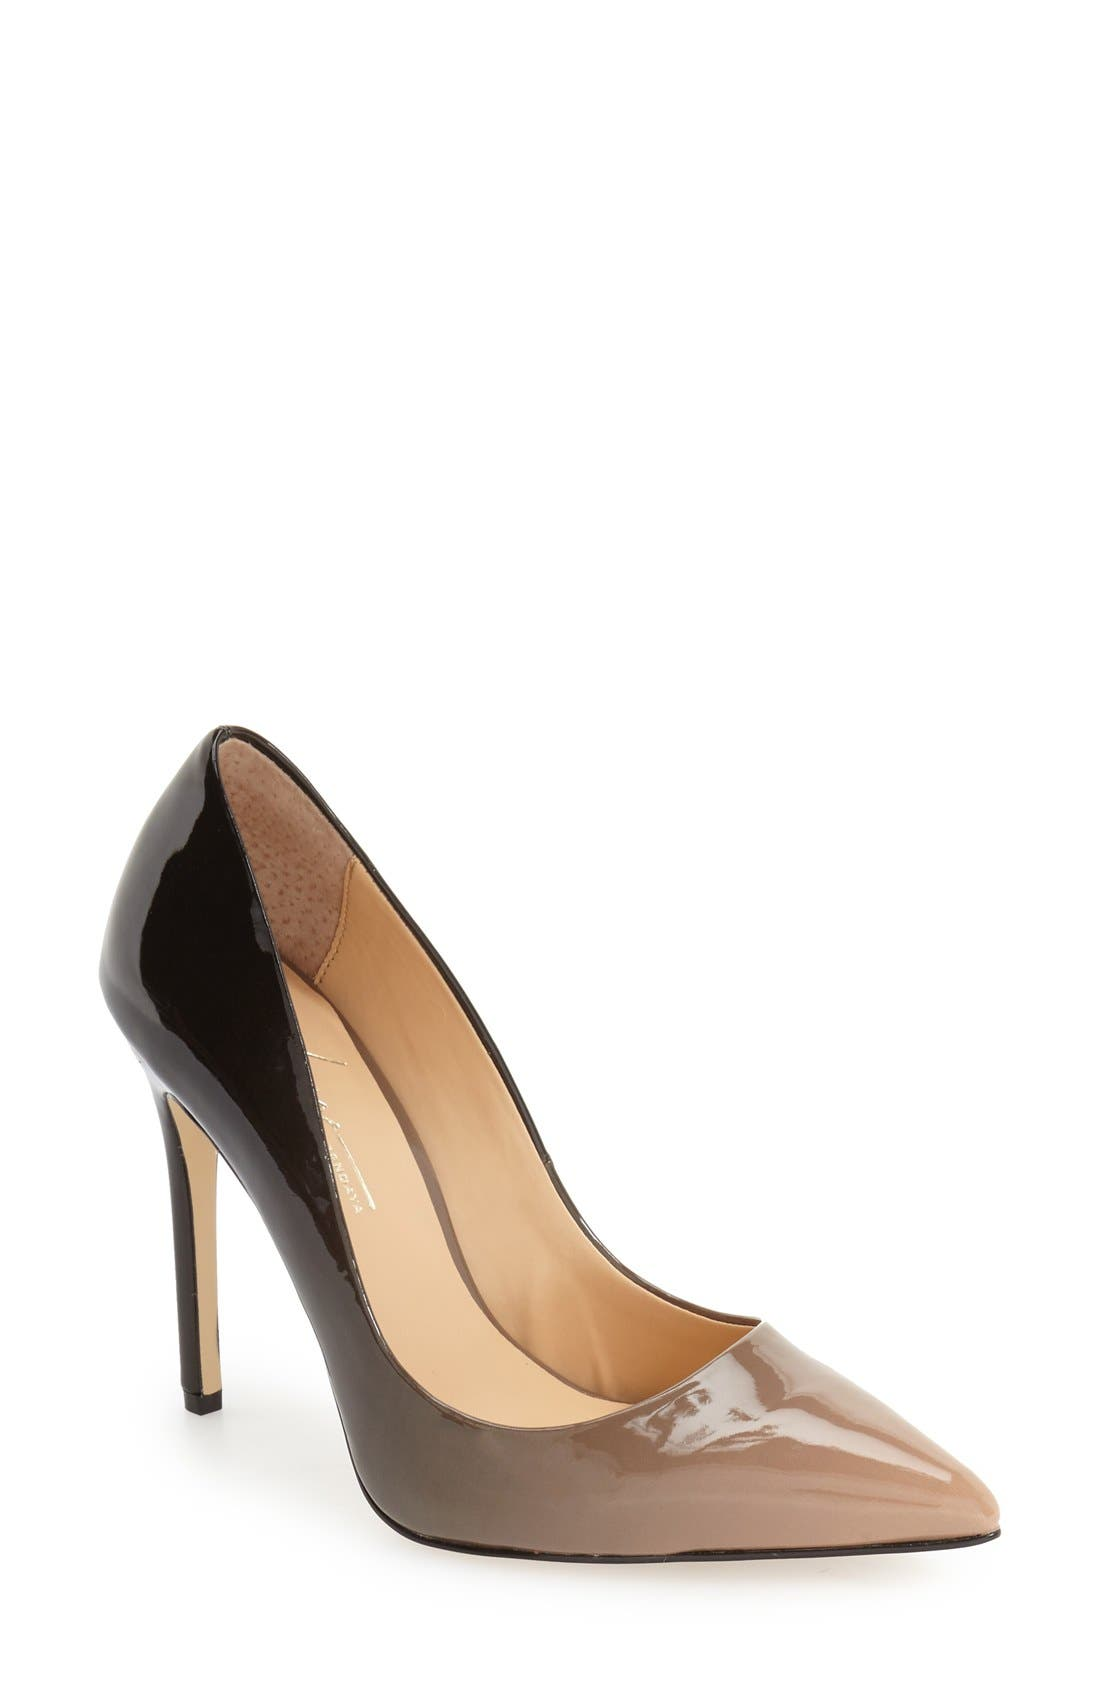 Main Image - Daya by Zendaya 'Atmore II' Pointy Toe Pump (Women)